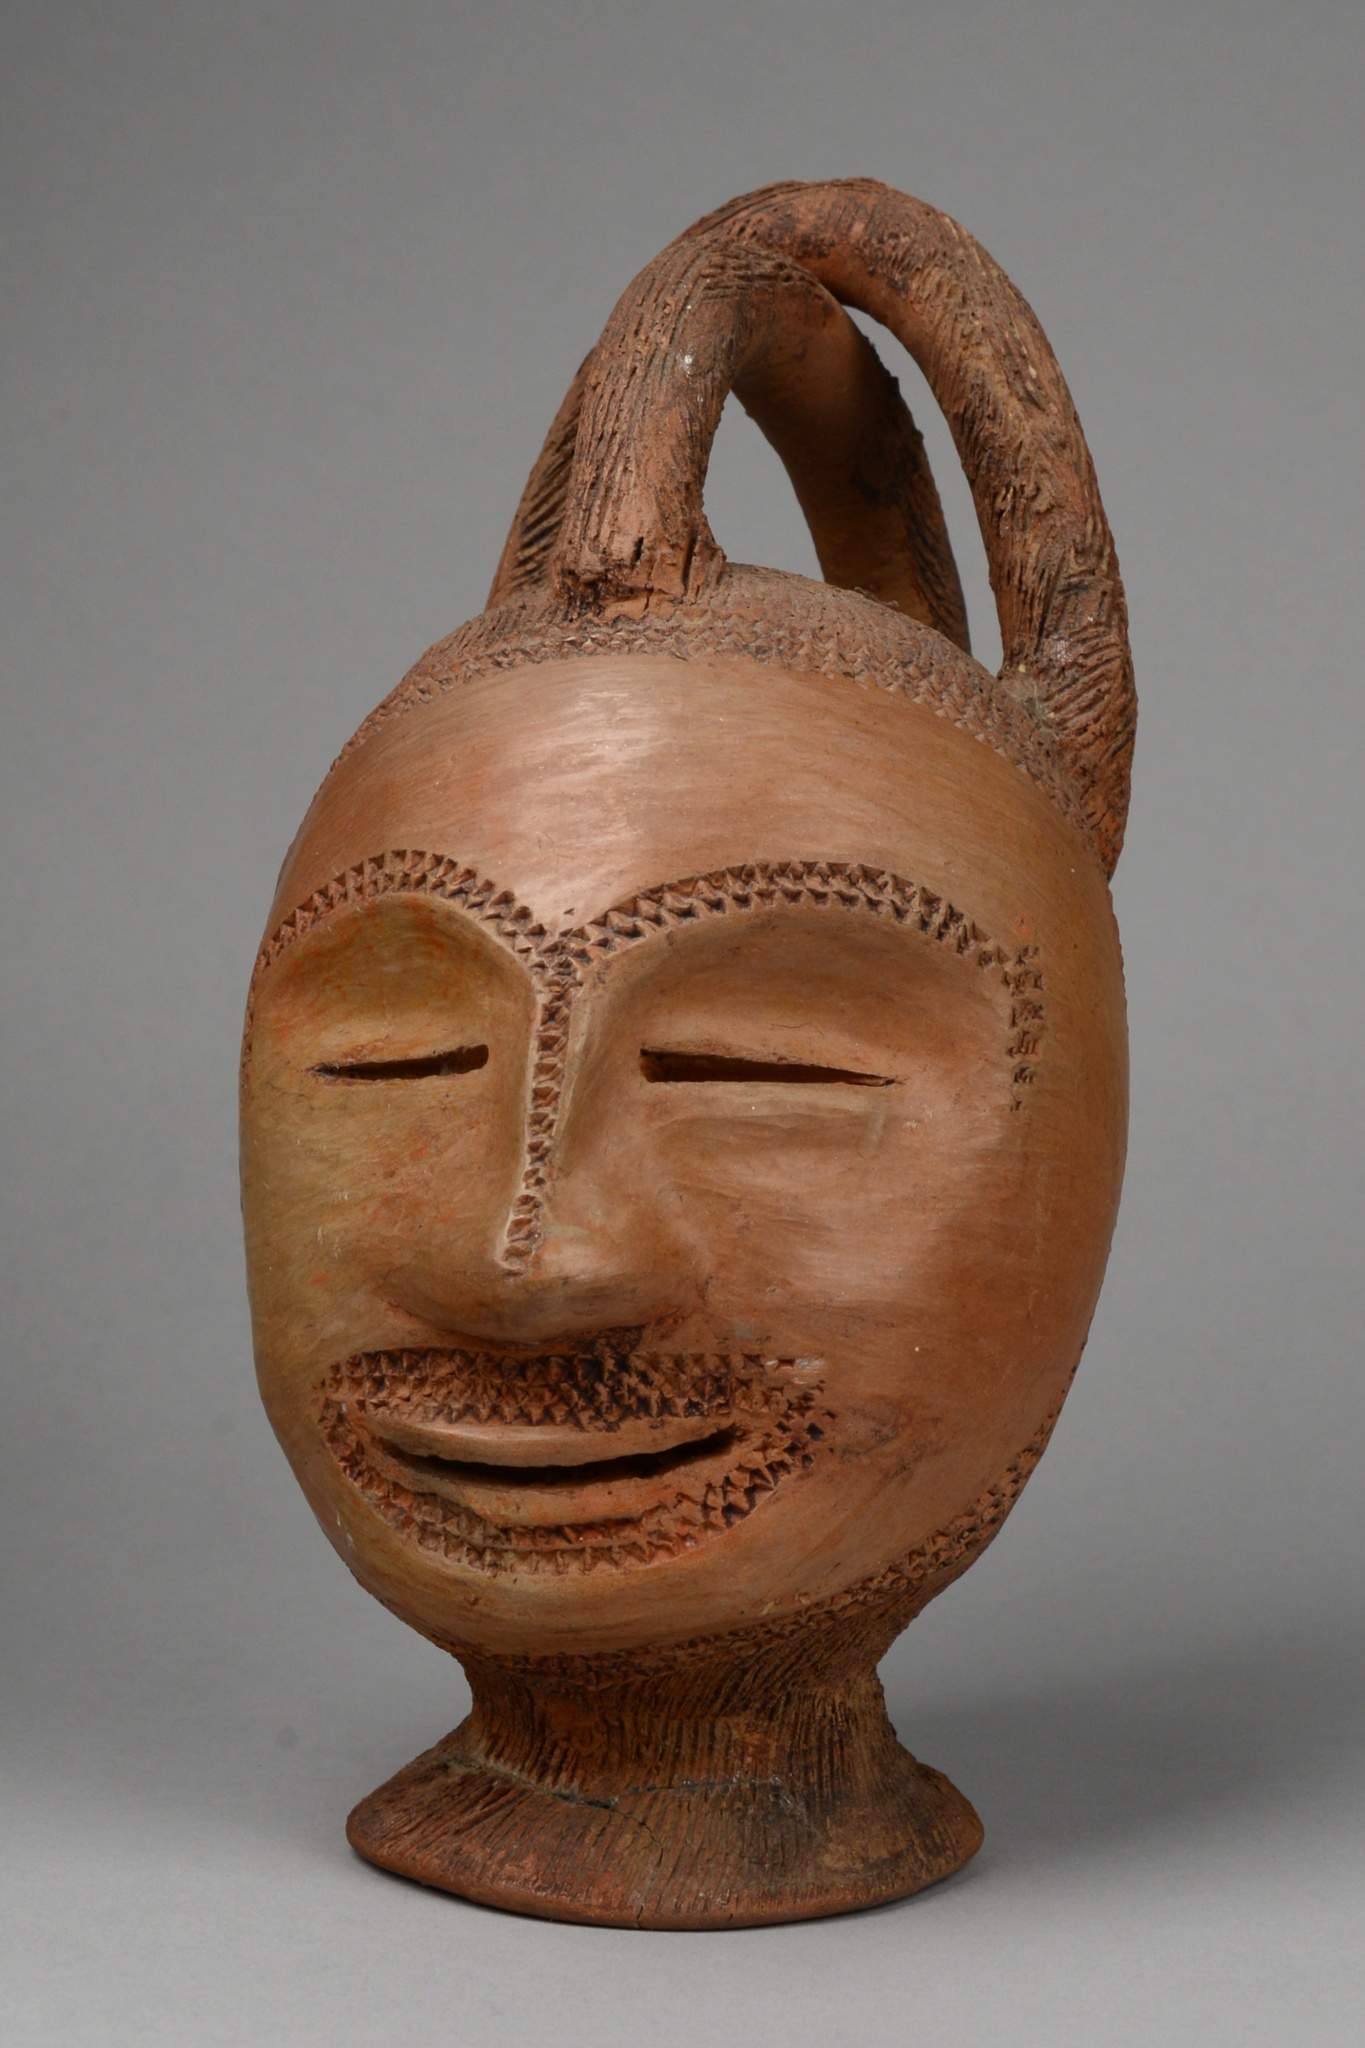 Ritual vessel in shape of a head